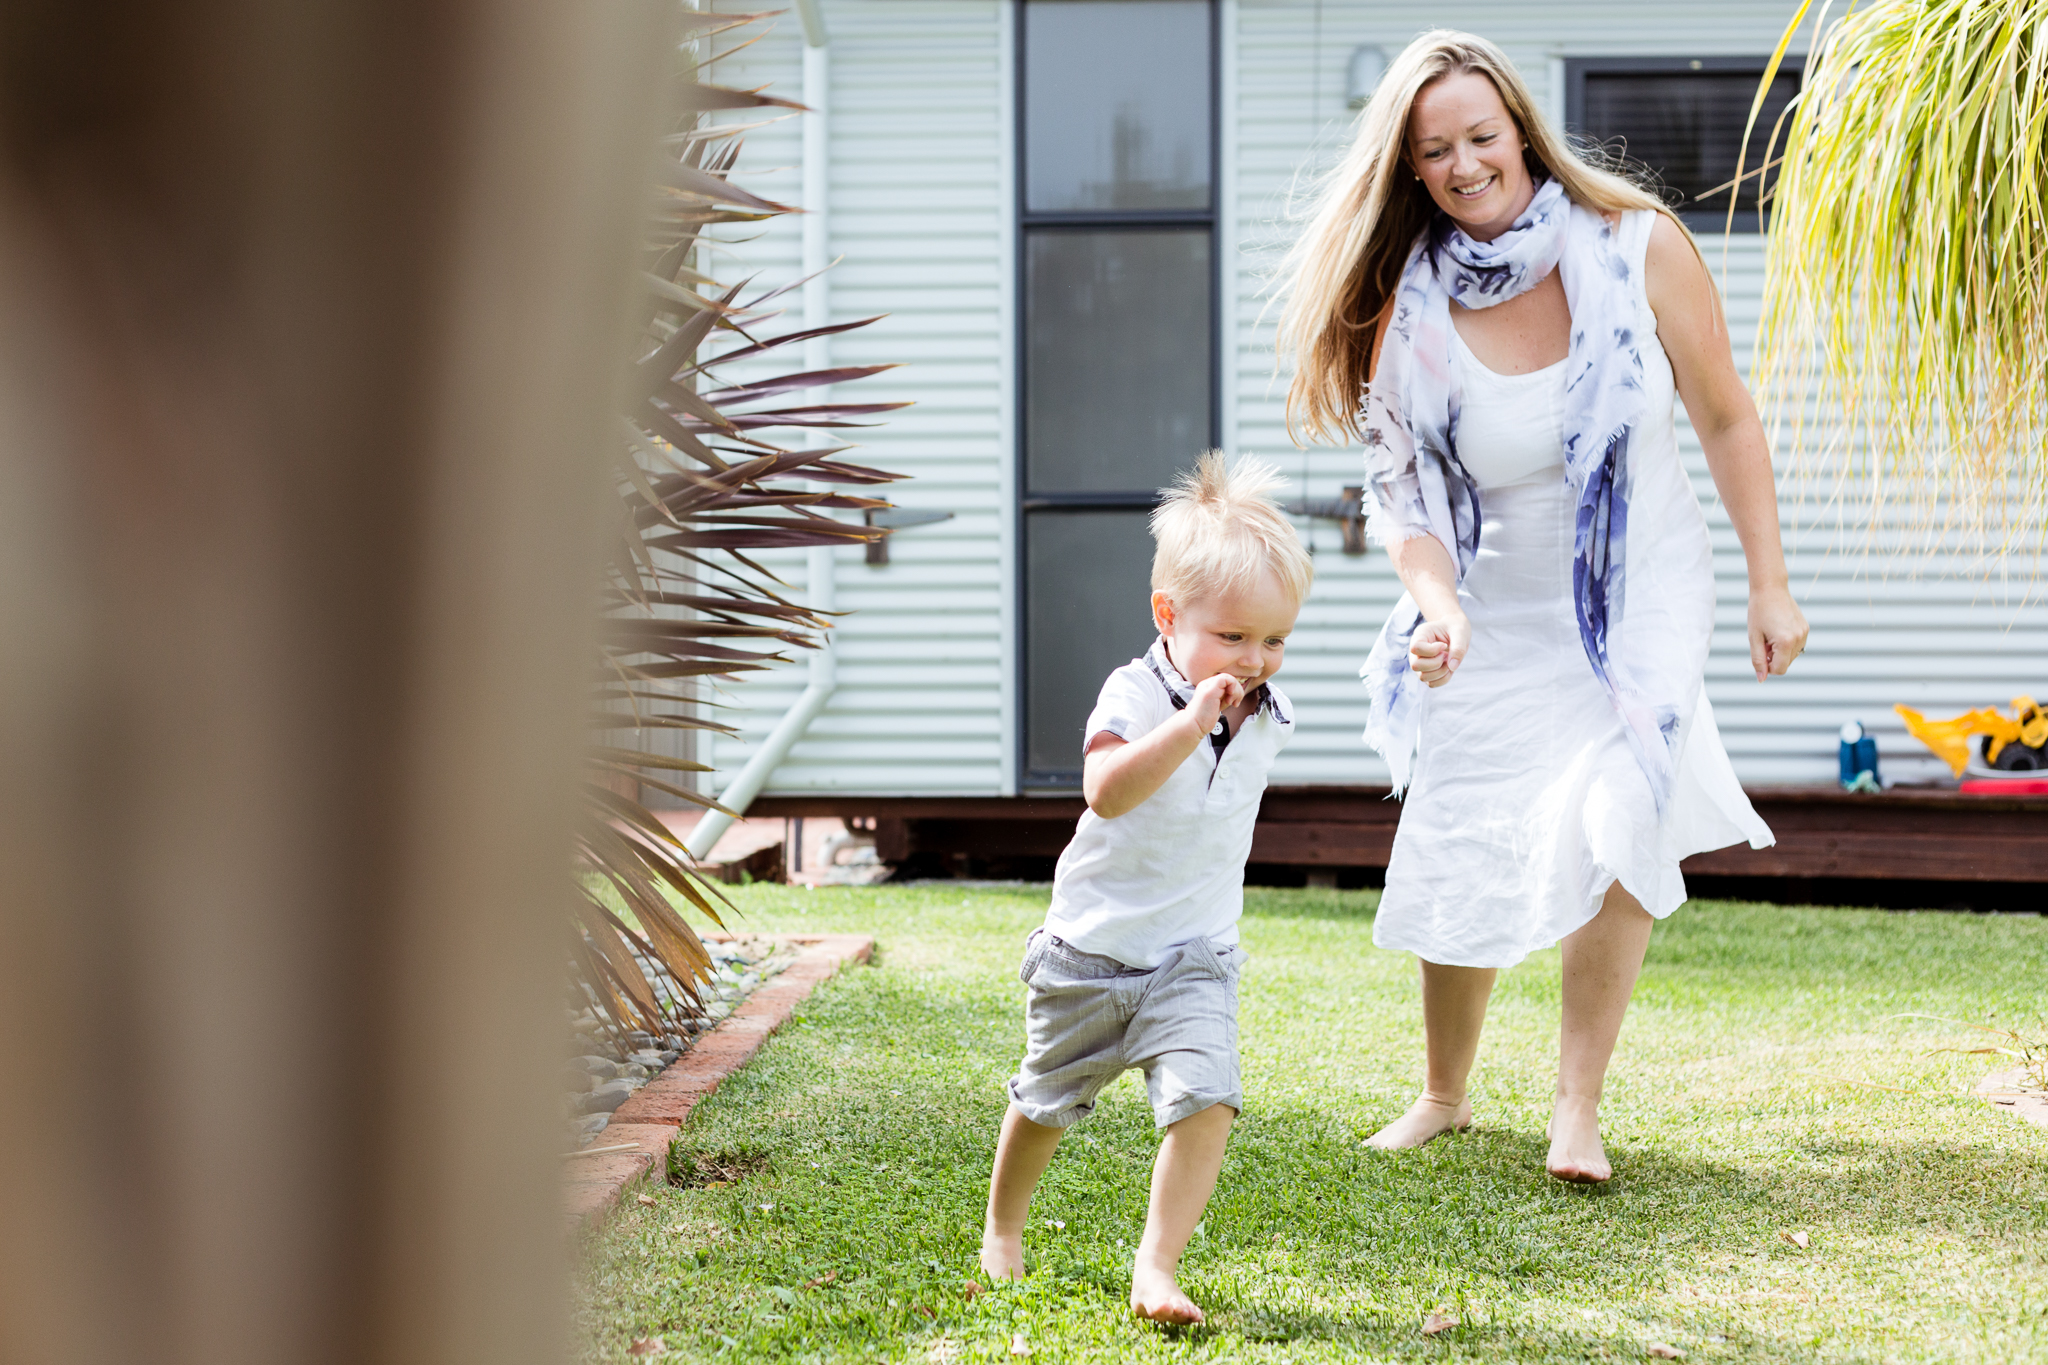 Mrs-Gardiner_Margaret-River-Family-Photographer-Inhome-Session-Busselton-South-West-Documentary-Photography-ACJT-14.jpg